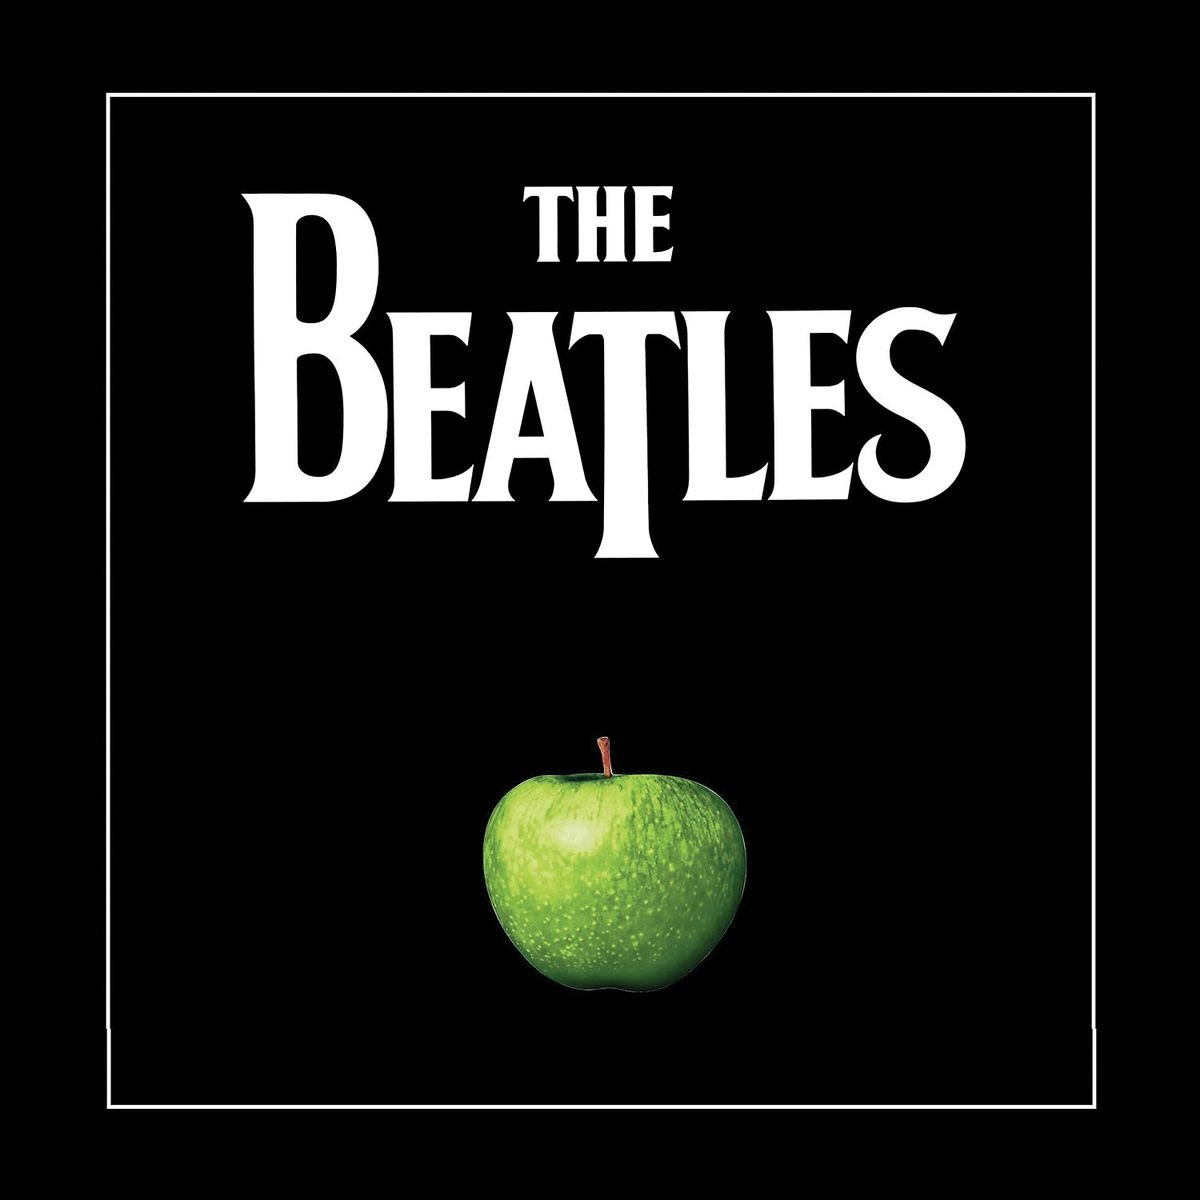 The Beatles (The Original Studio Recordings) Stereo Box Set by The Beatles